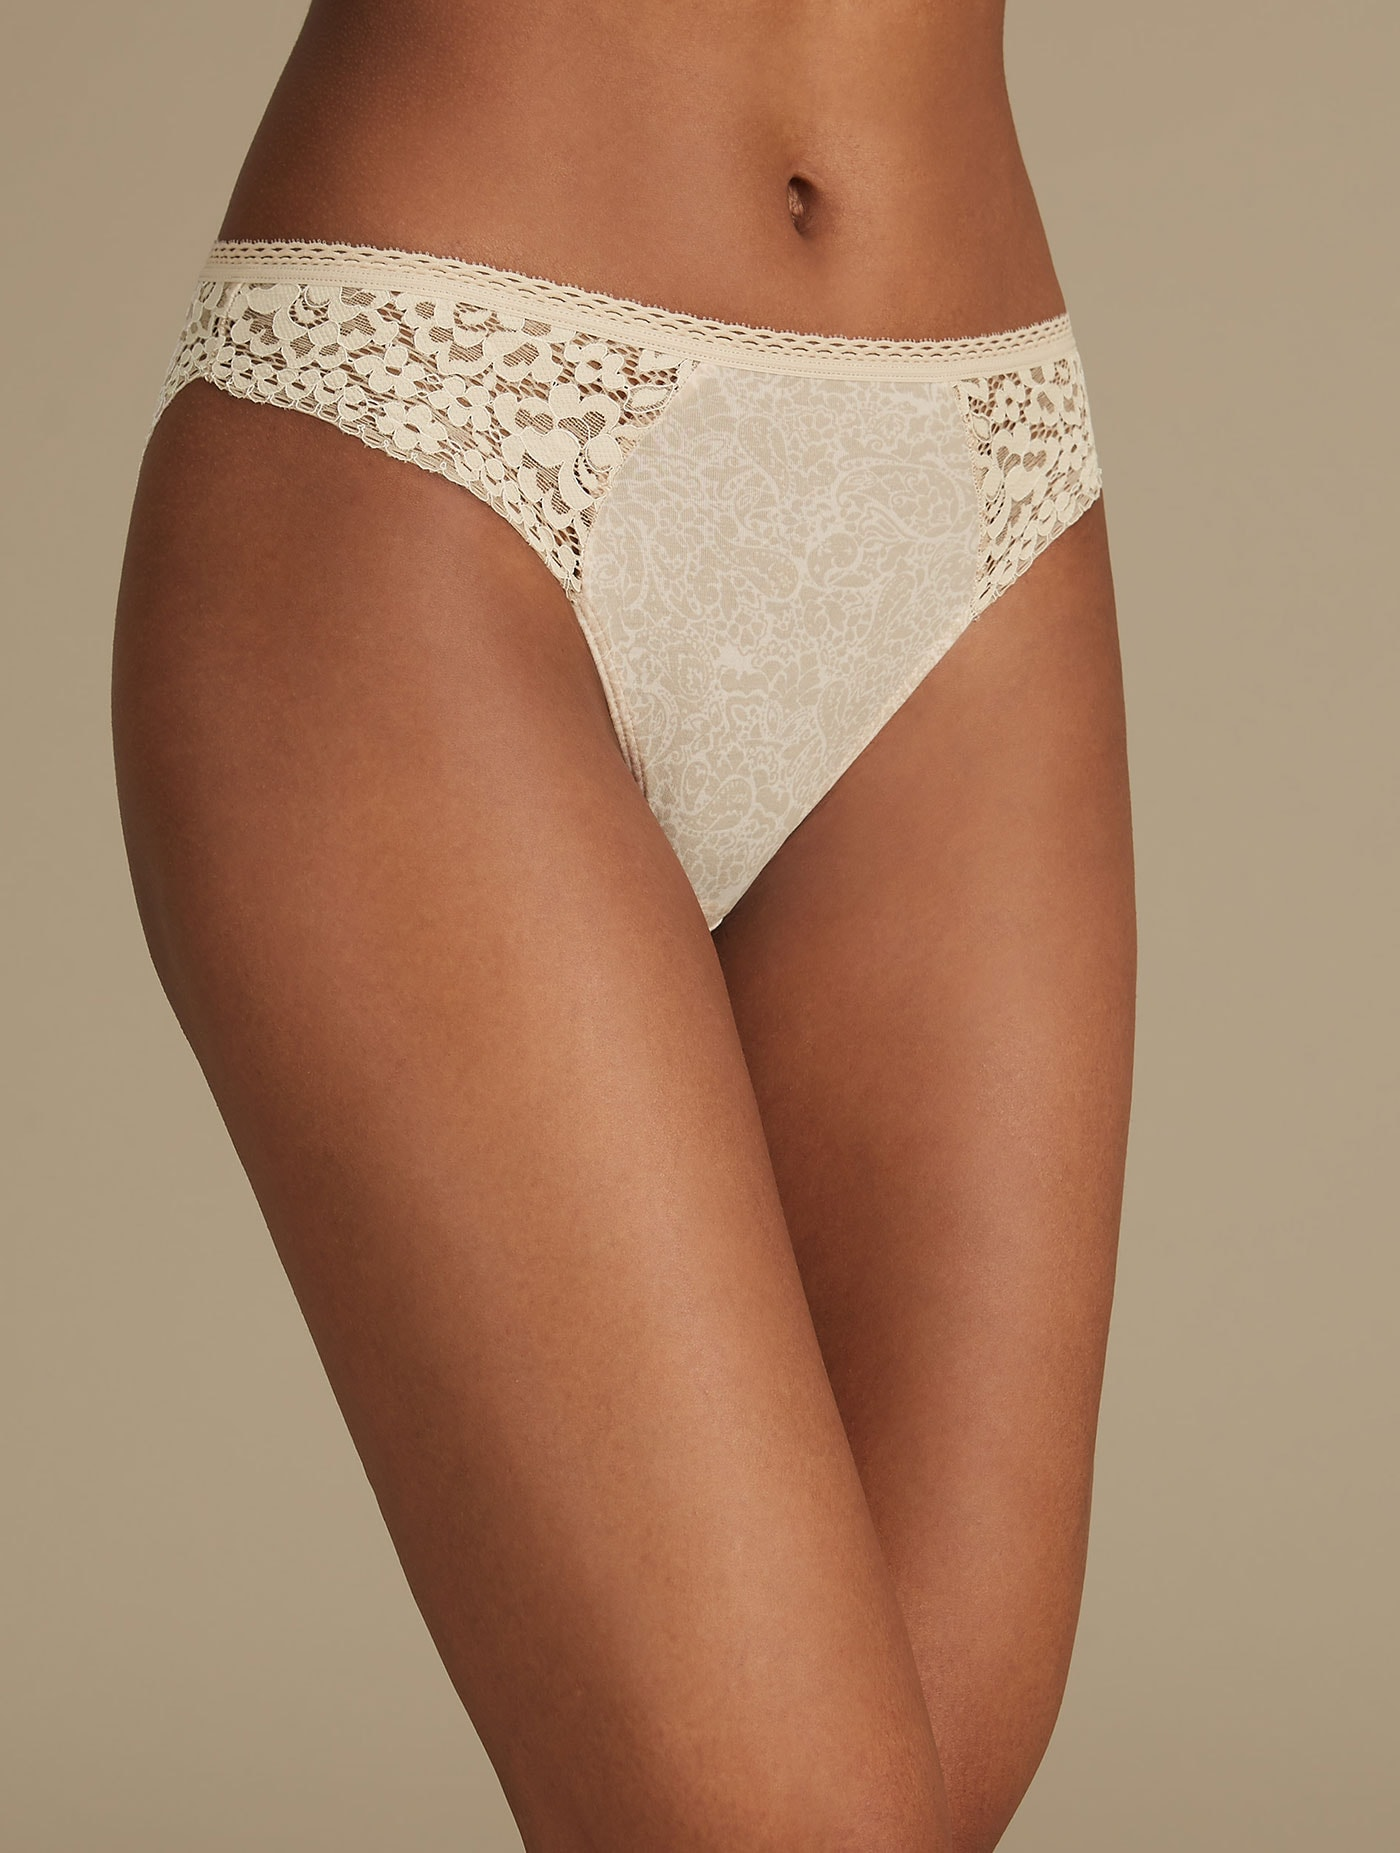 M/&S COLLECTION Women/'s Cotton Rich Vintage Lace High Leg Knickers New!!